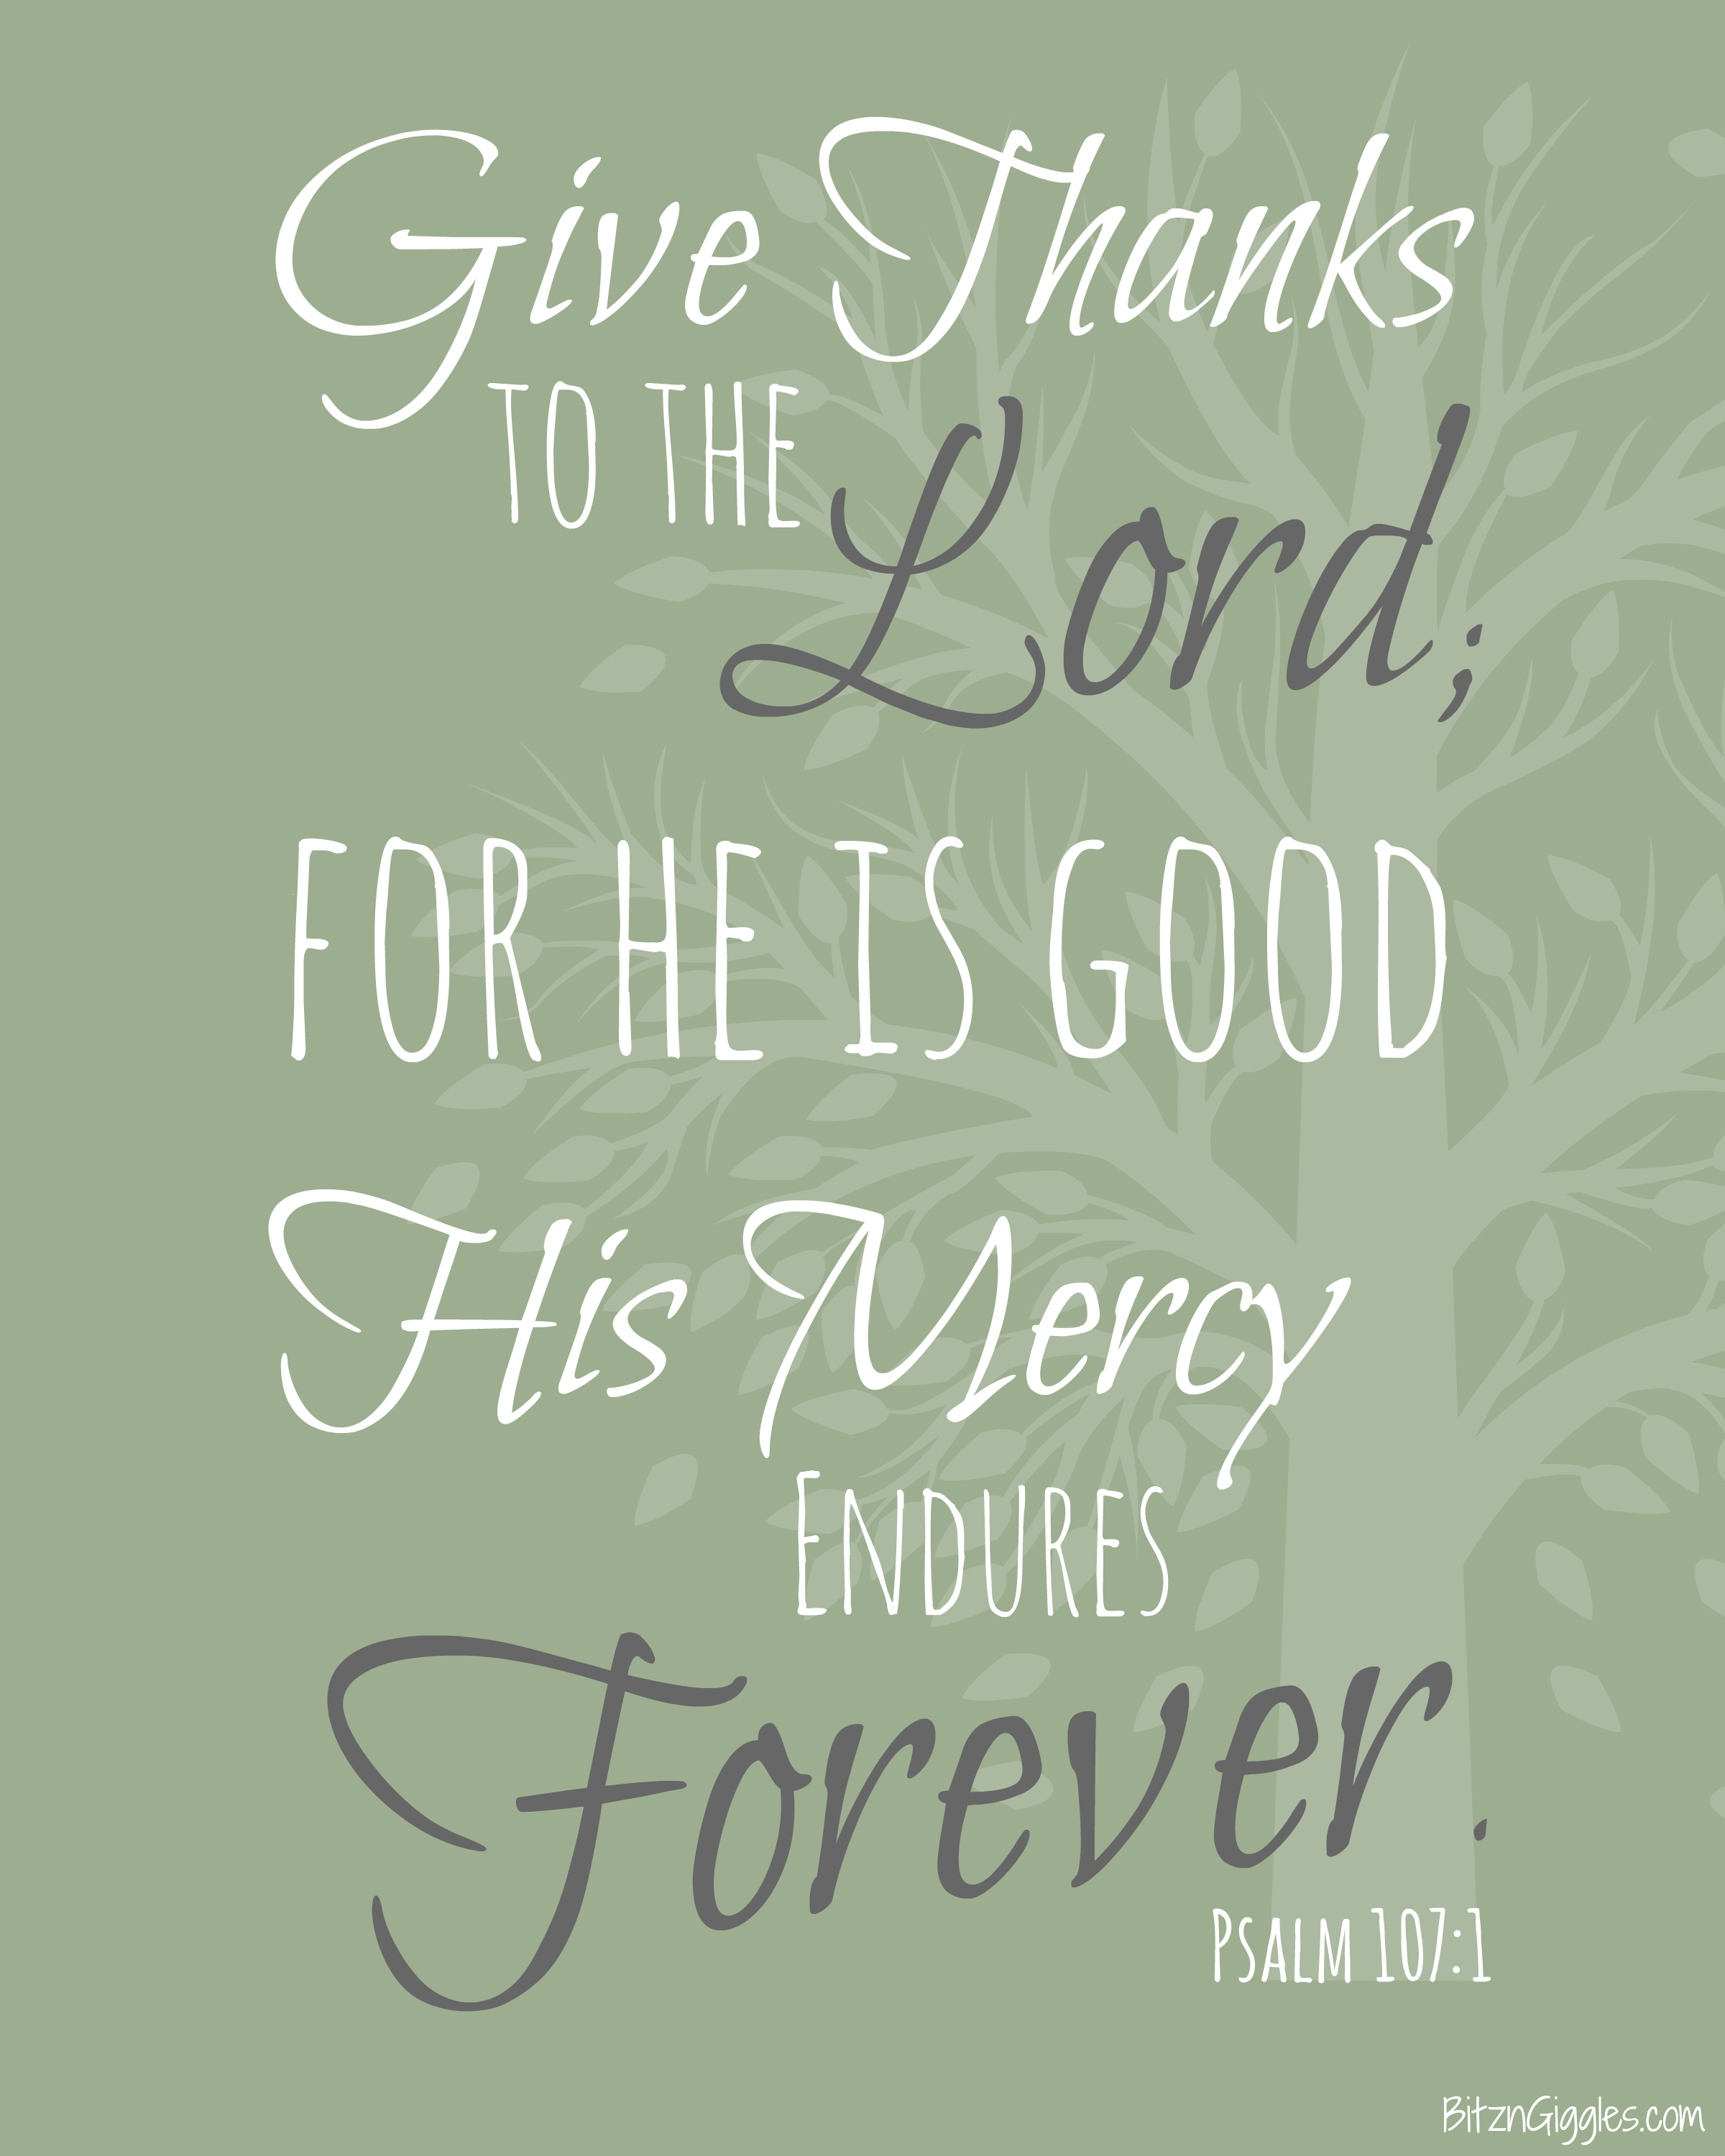 graphic about Give Thanks Printable called Thanksgiving Printable - Present Because of